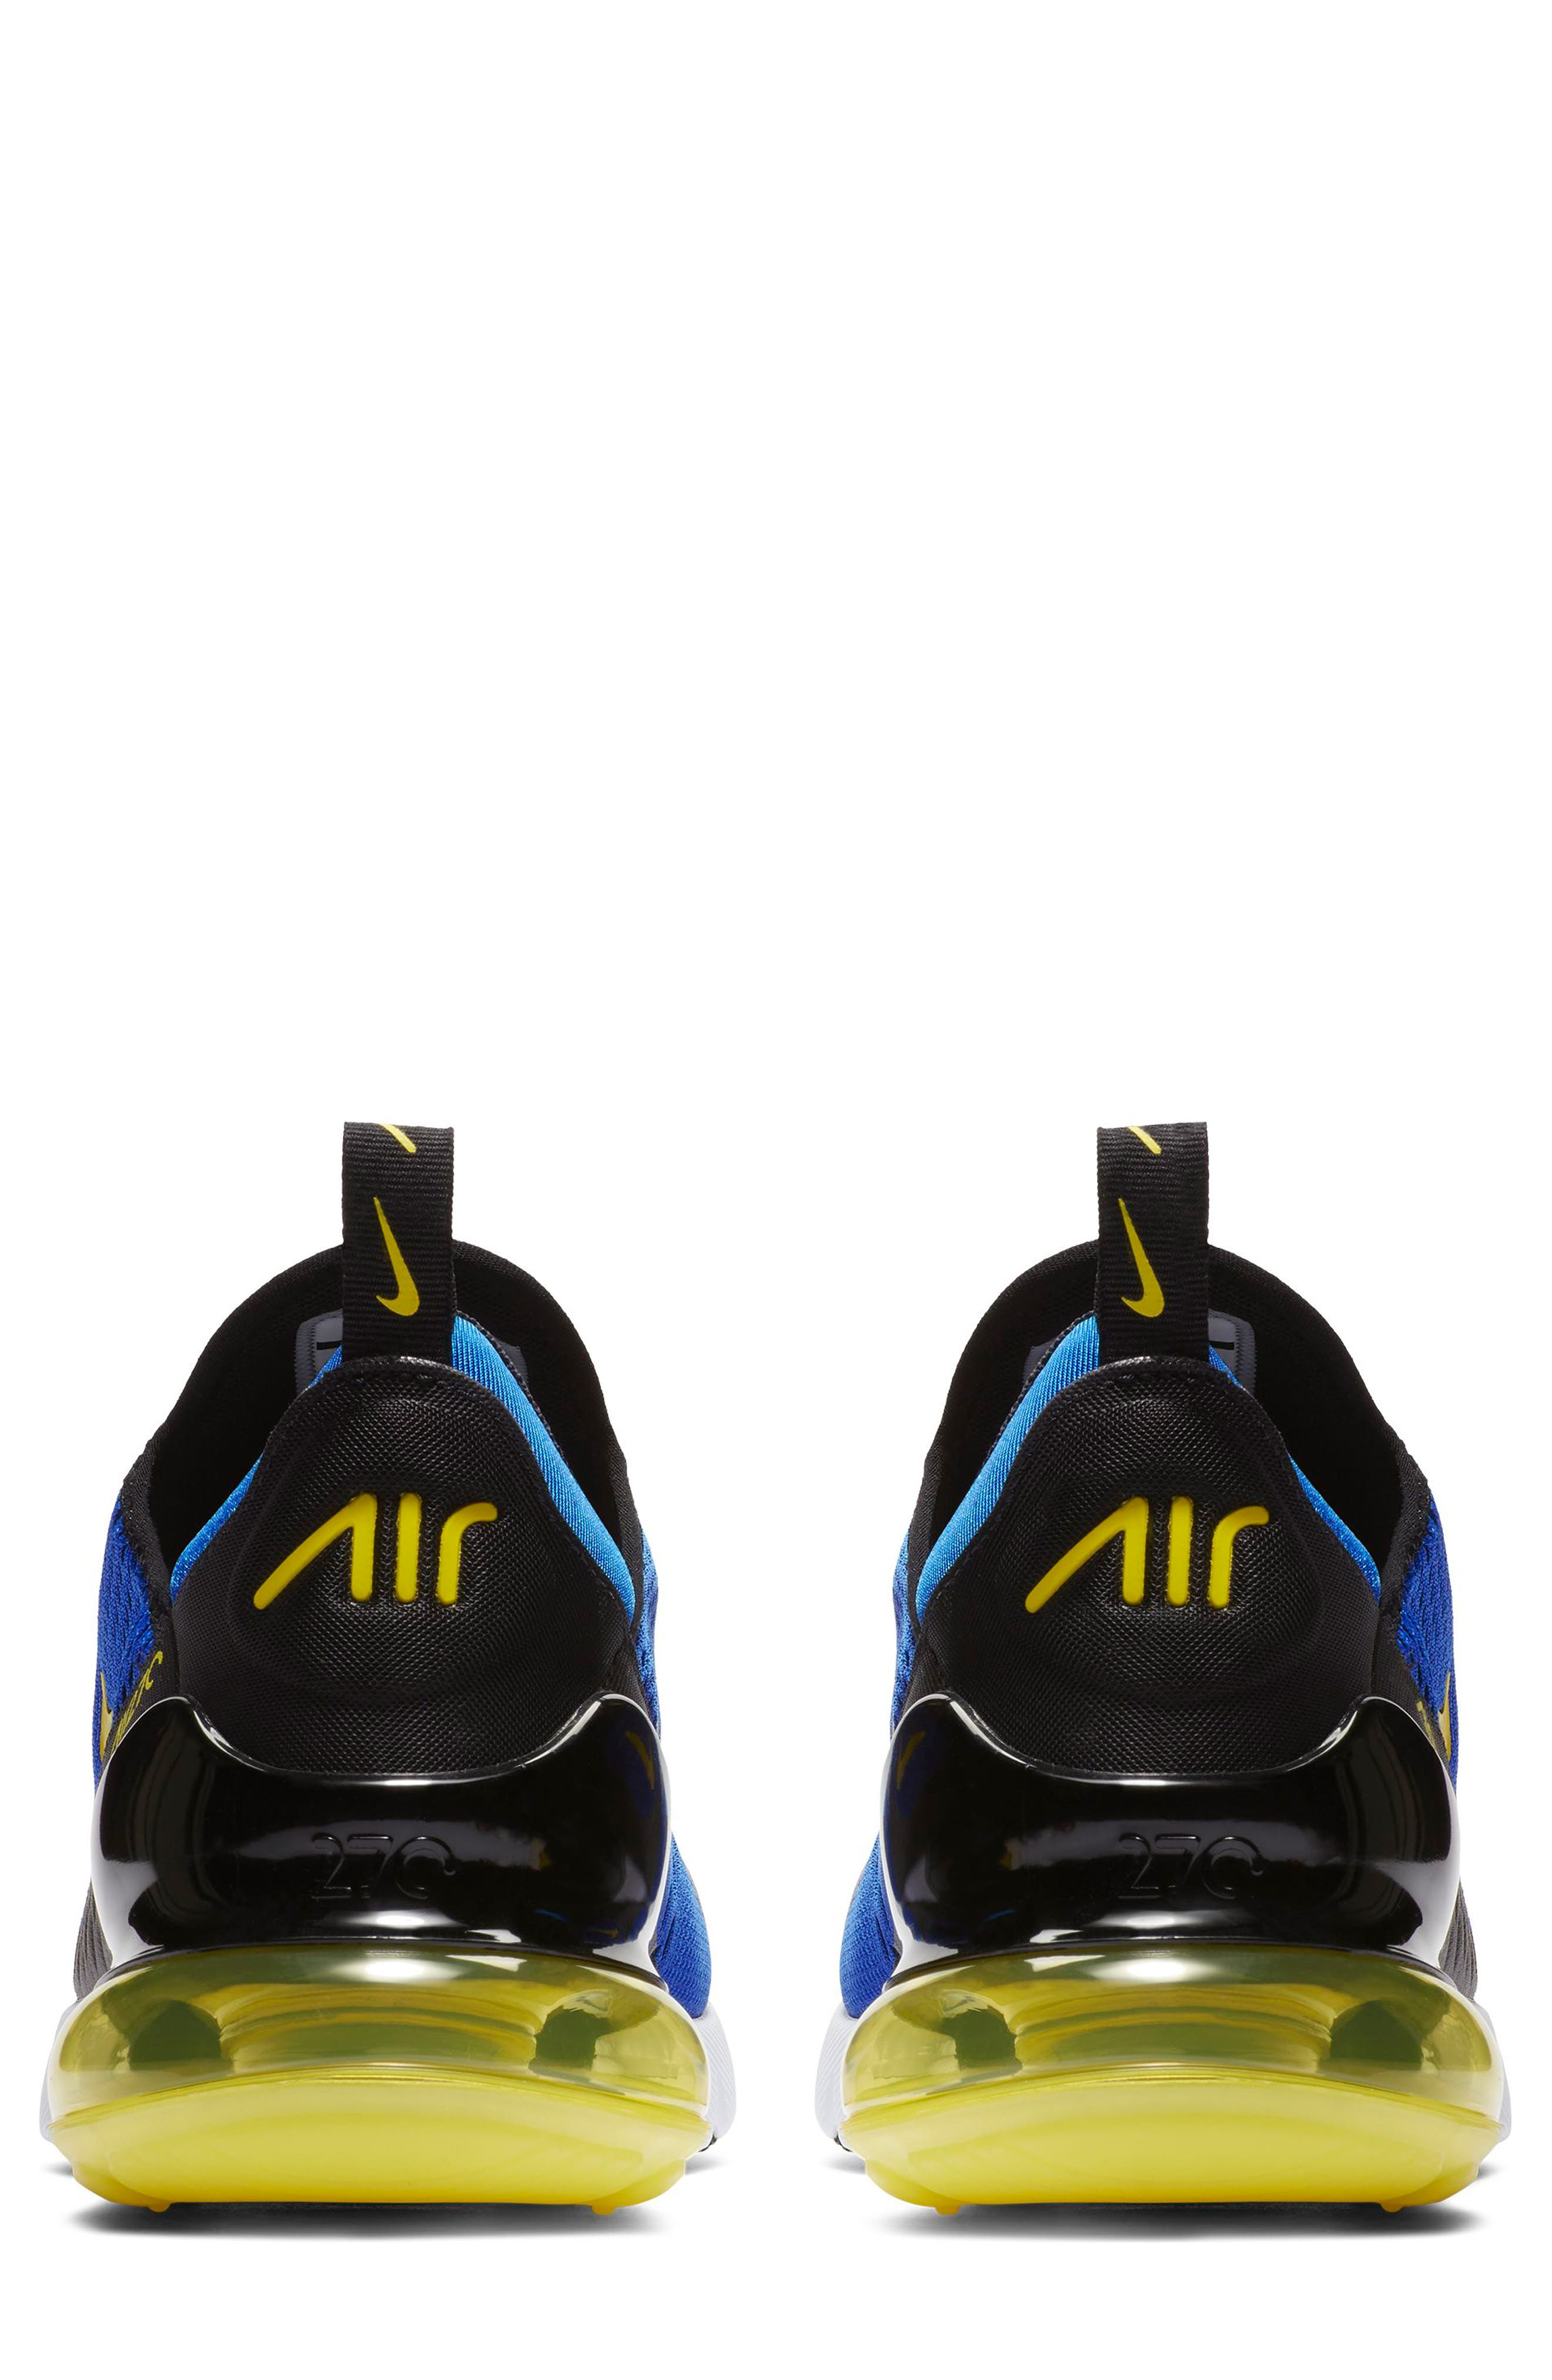 Air Max 270 Sneaker,                             Alternate thumbnail 5, color,                             GAME ROYAL/ WHITE/ BLACK